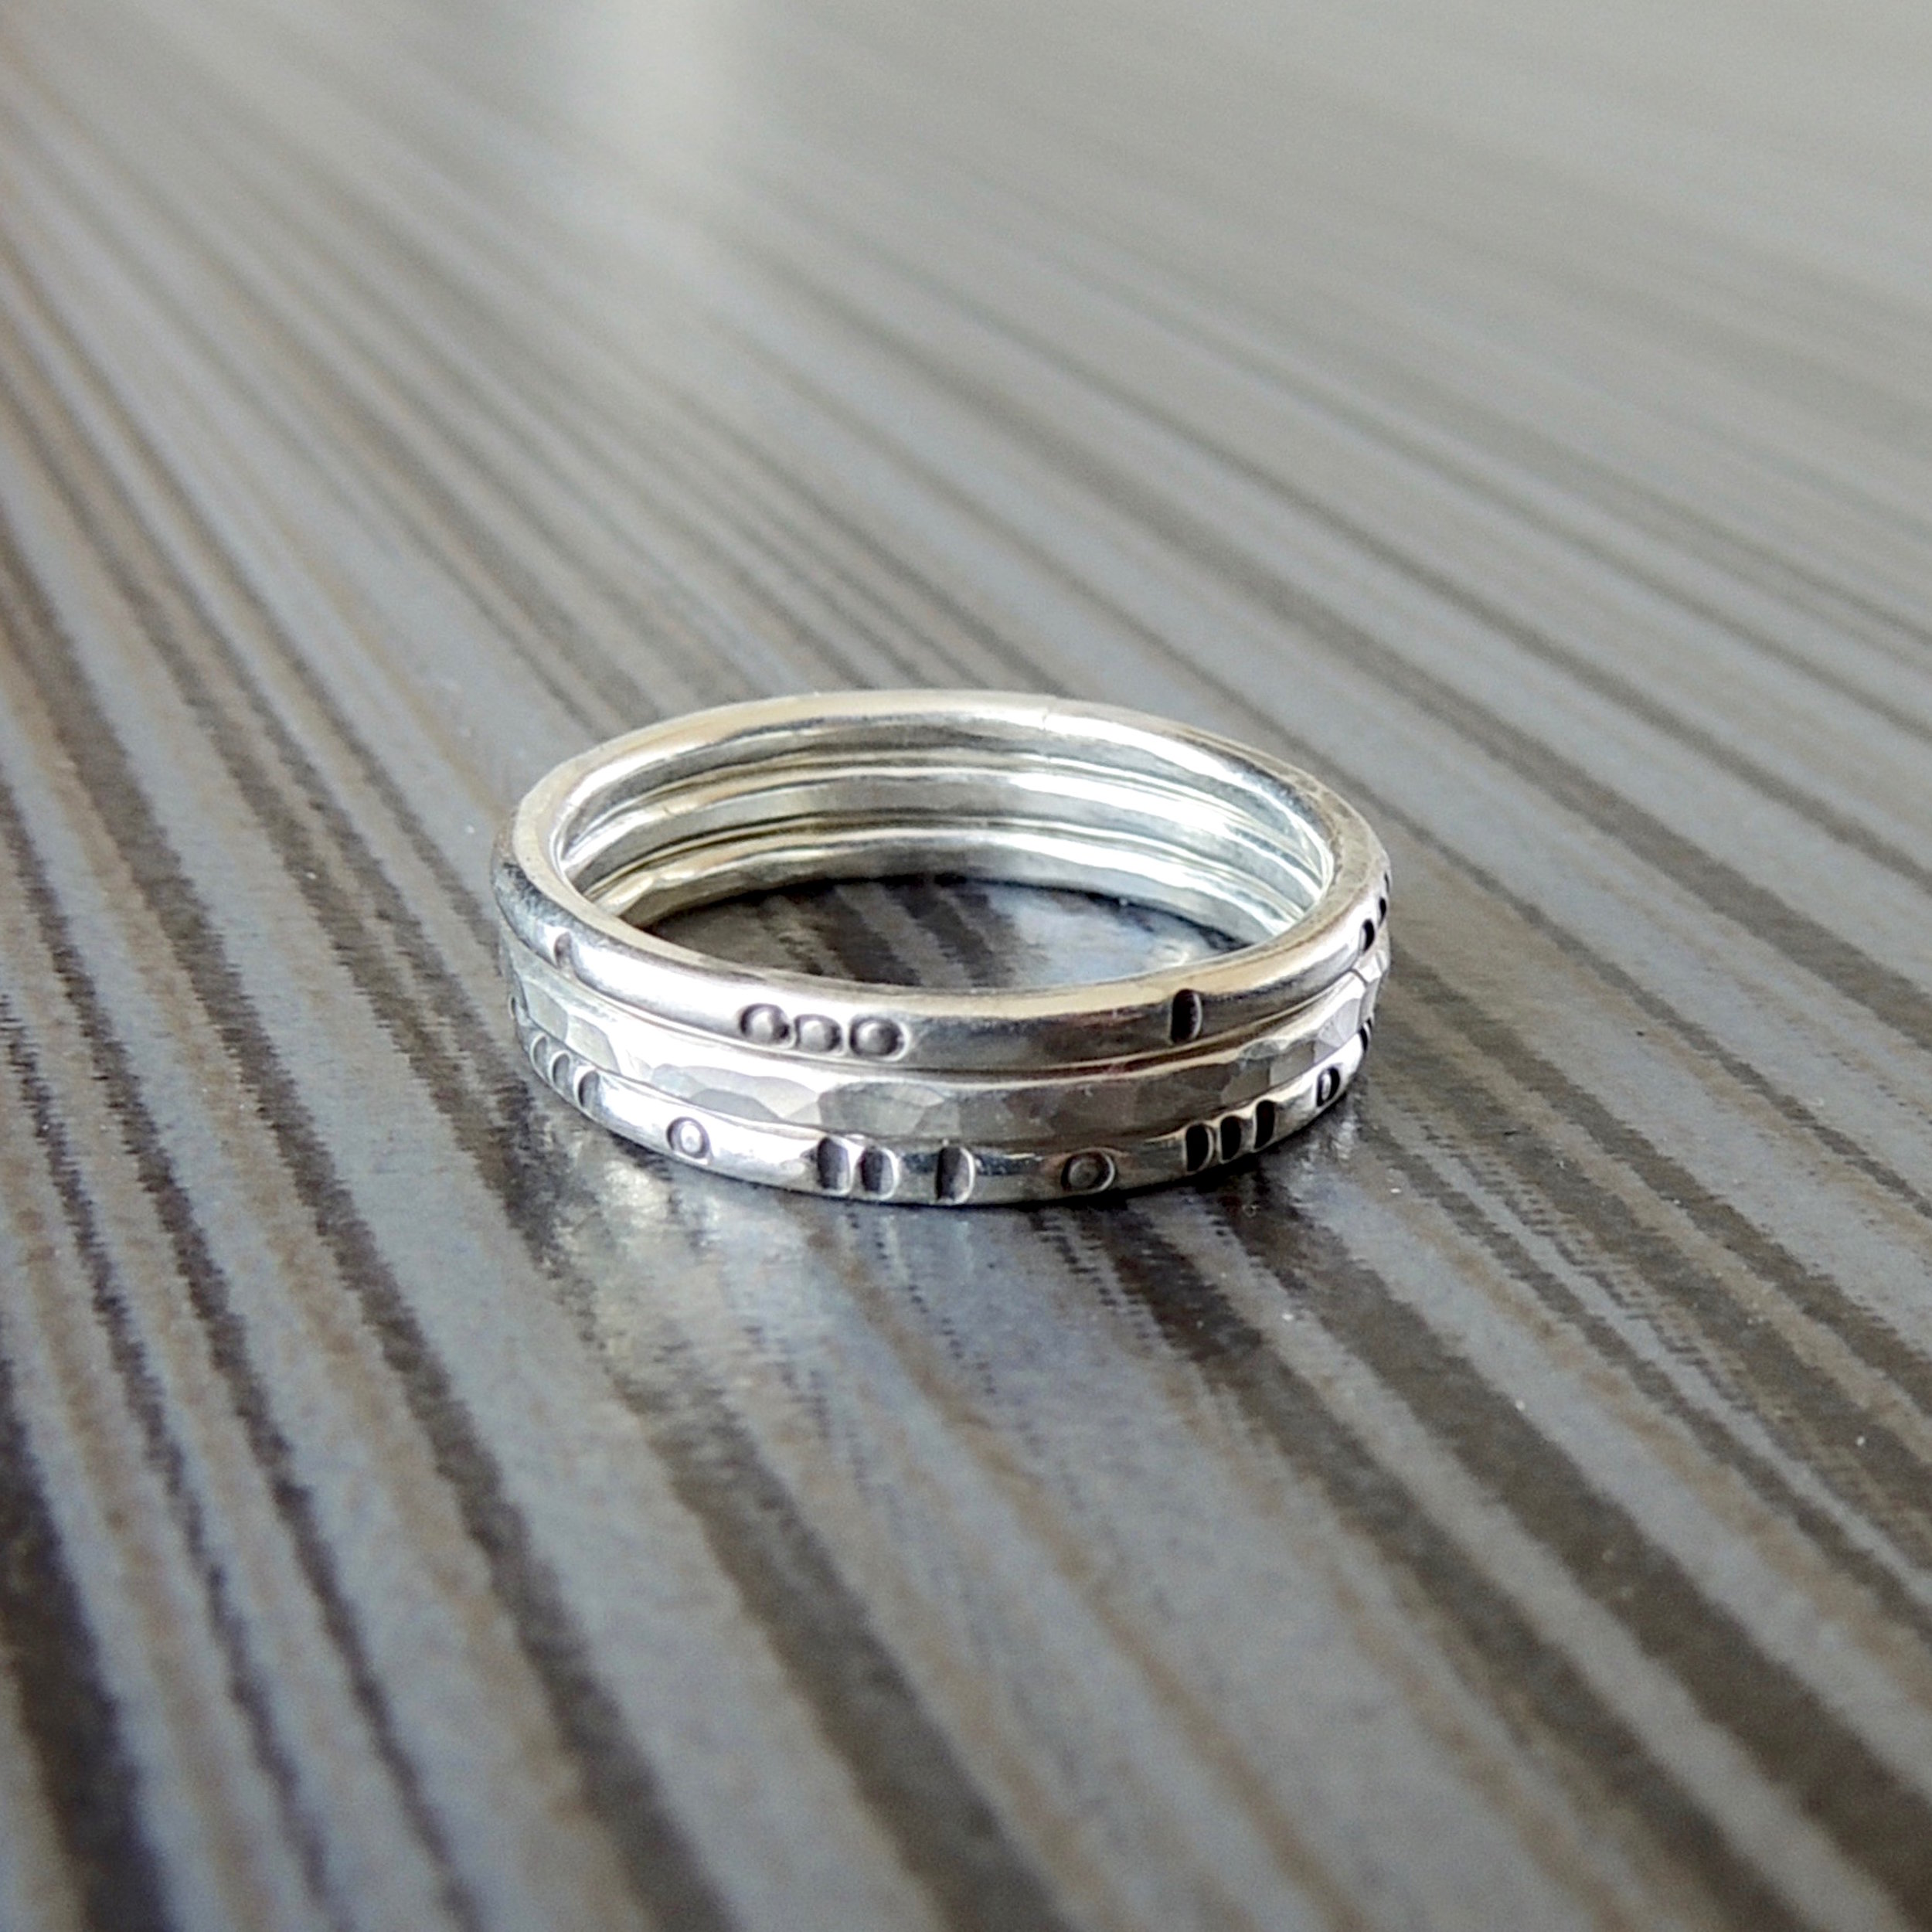 asheville-jewelry-workshop-rings-silver-stacking-ignite-studios